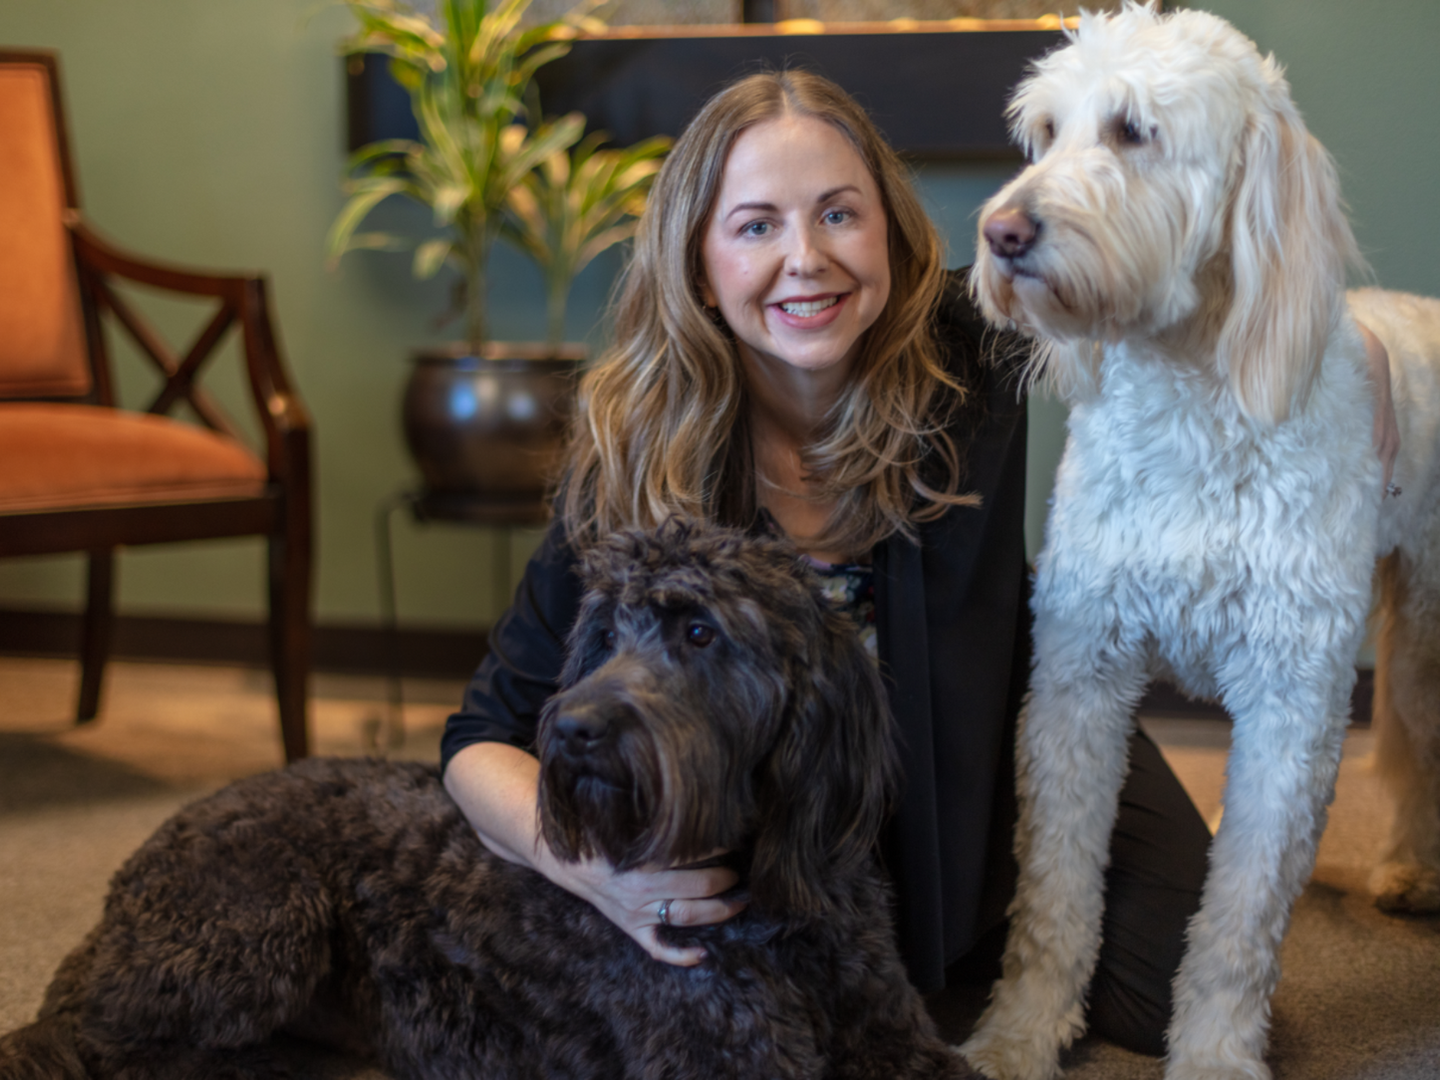 Dr. April Schulte at Healing Horizons with her dogs